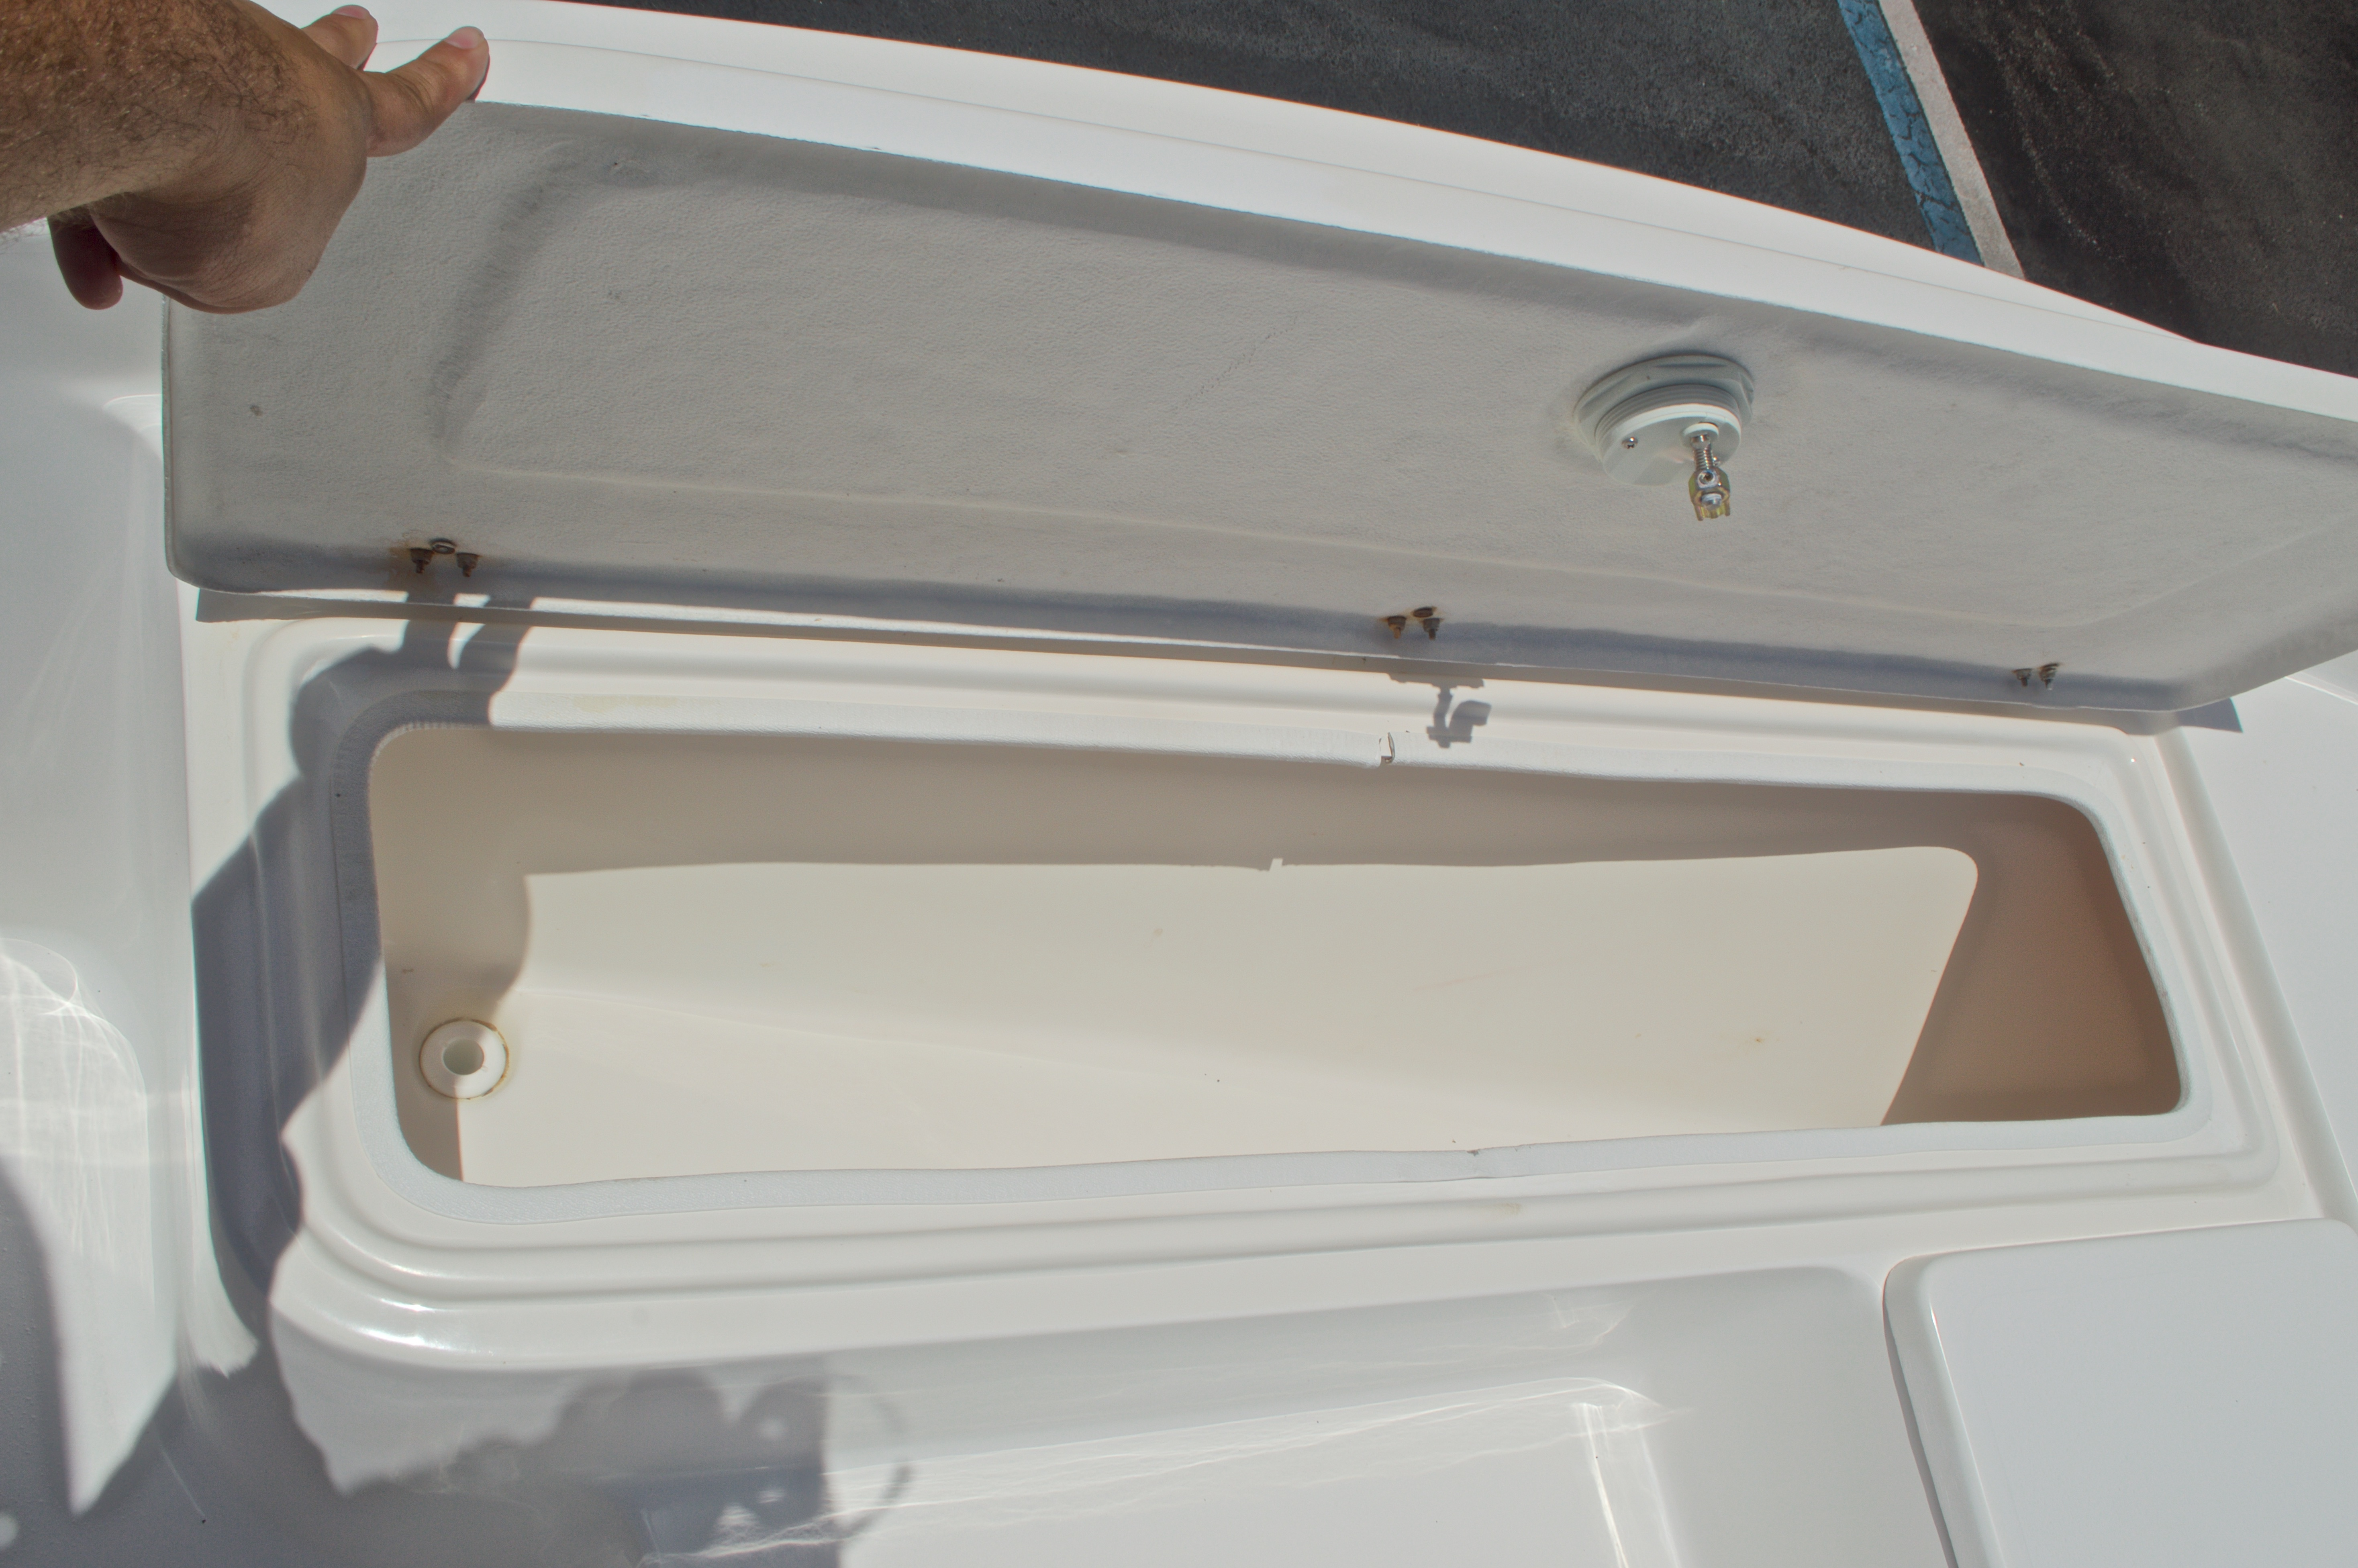 Thumbnail 52 for Used 2005 Sea Chaser 245 Bay Runner LX boat for sale in West Palm Beach, FL